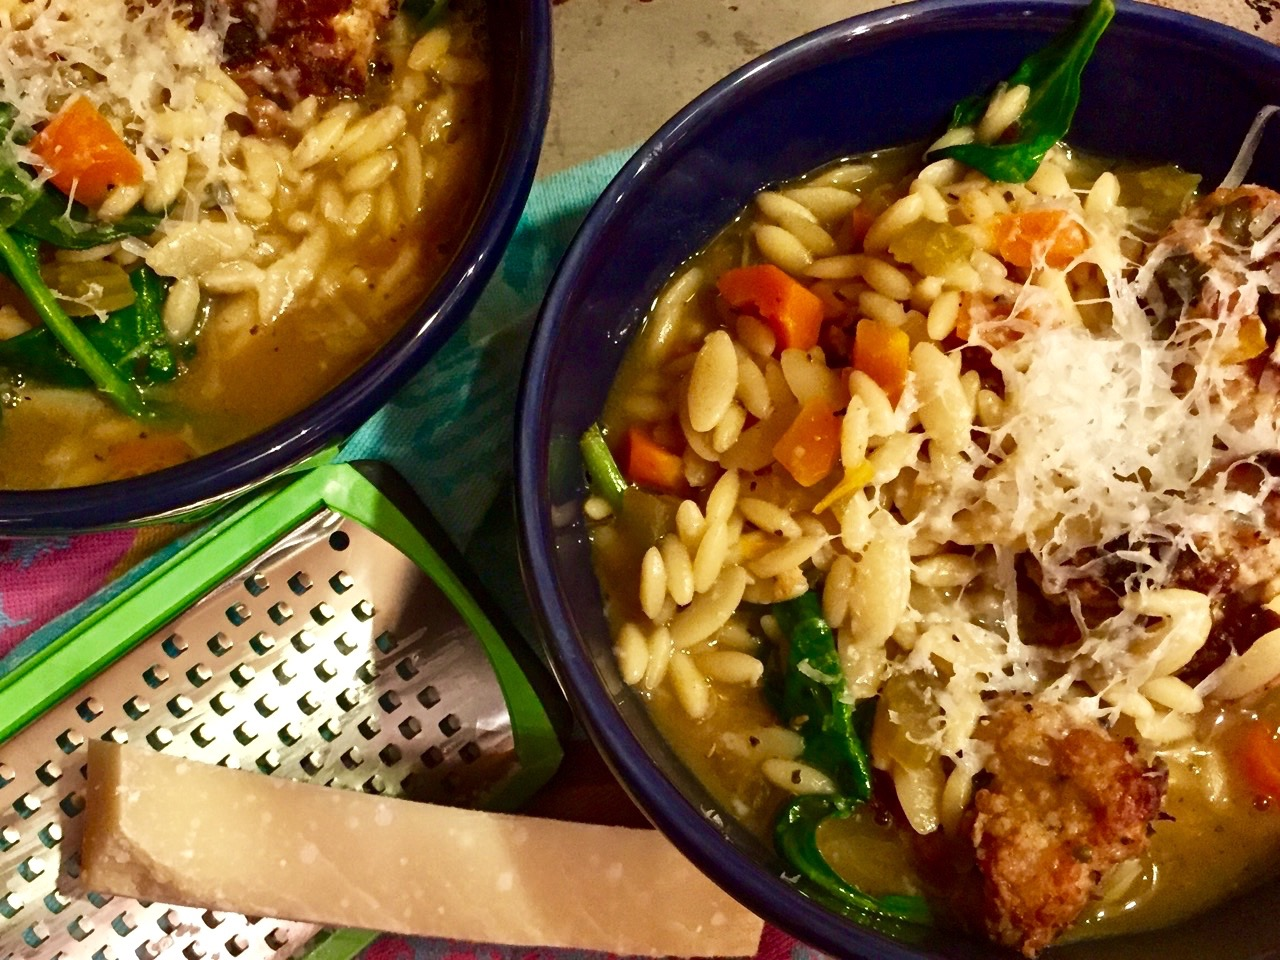 Italian Wedding Soup with Orzo and Spicy Chicken Meatballs